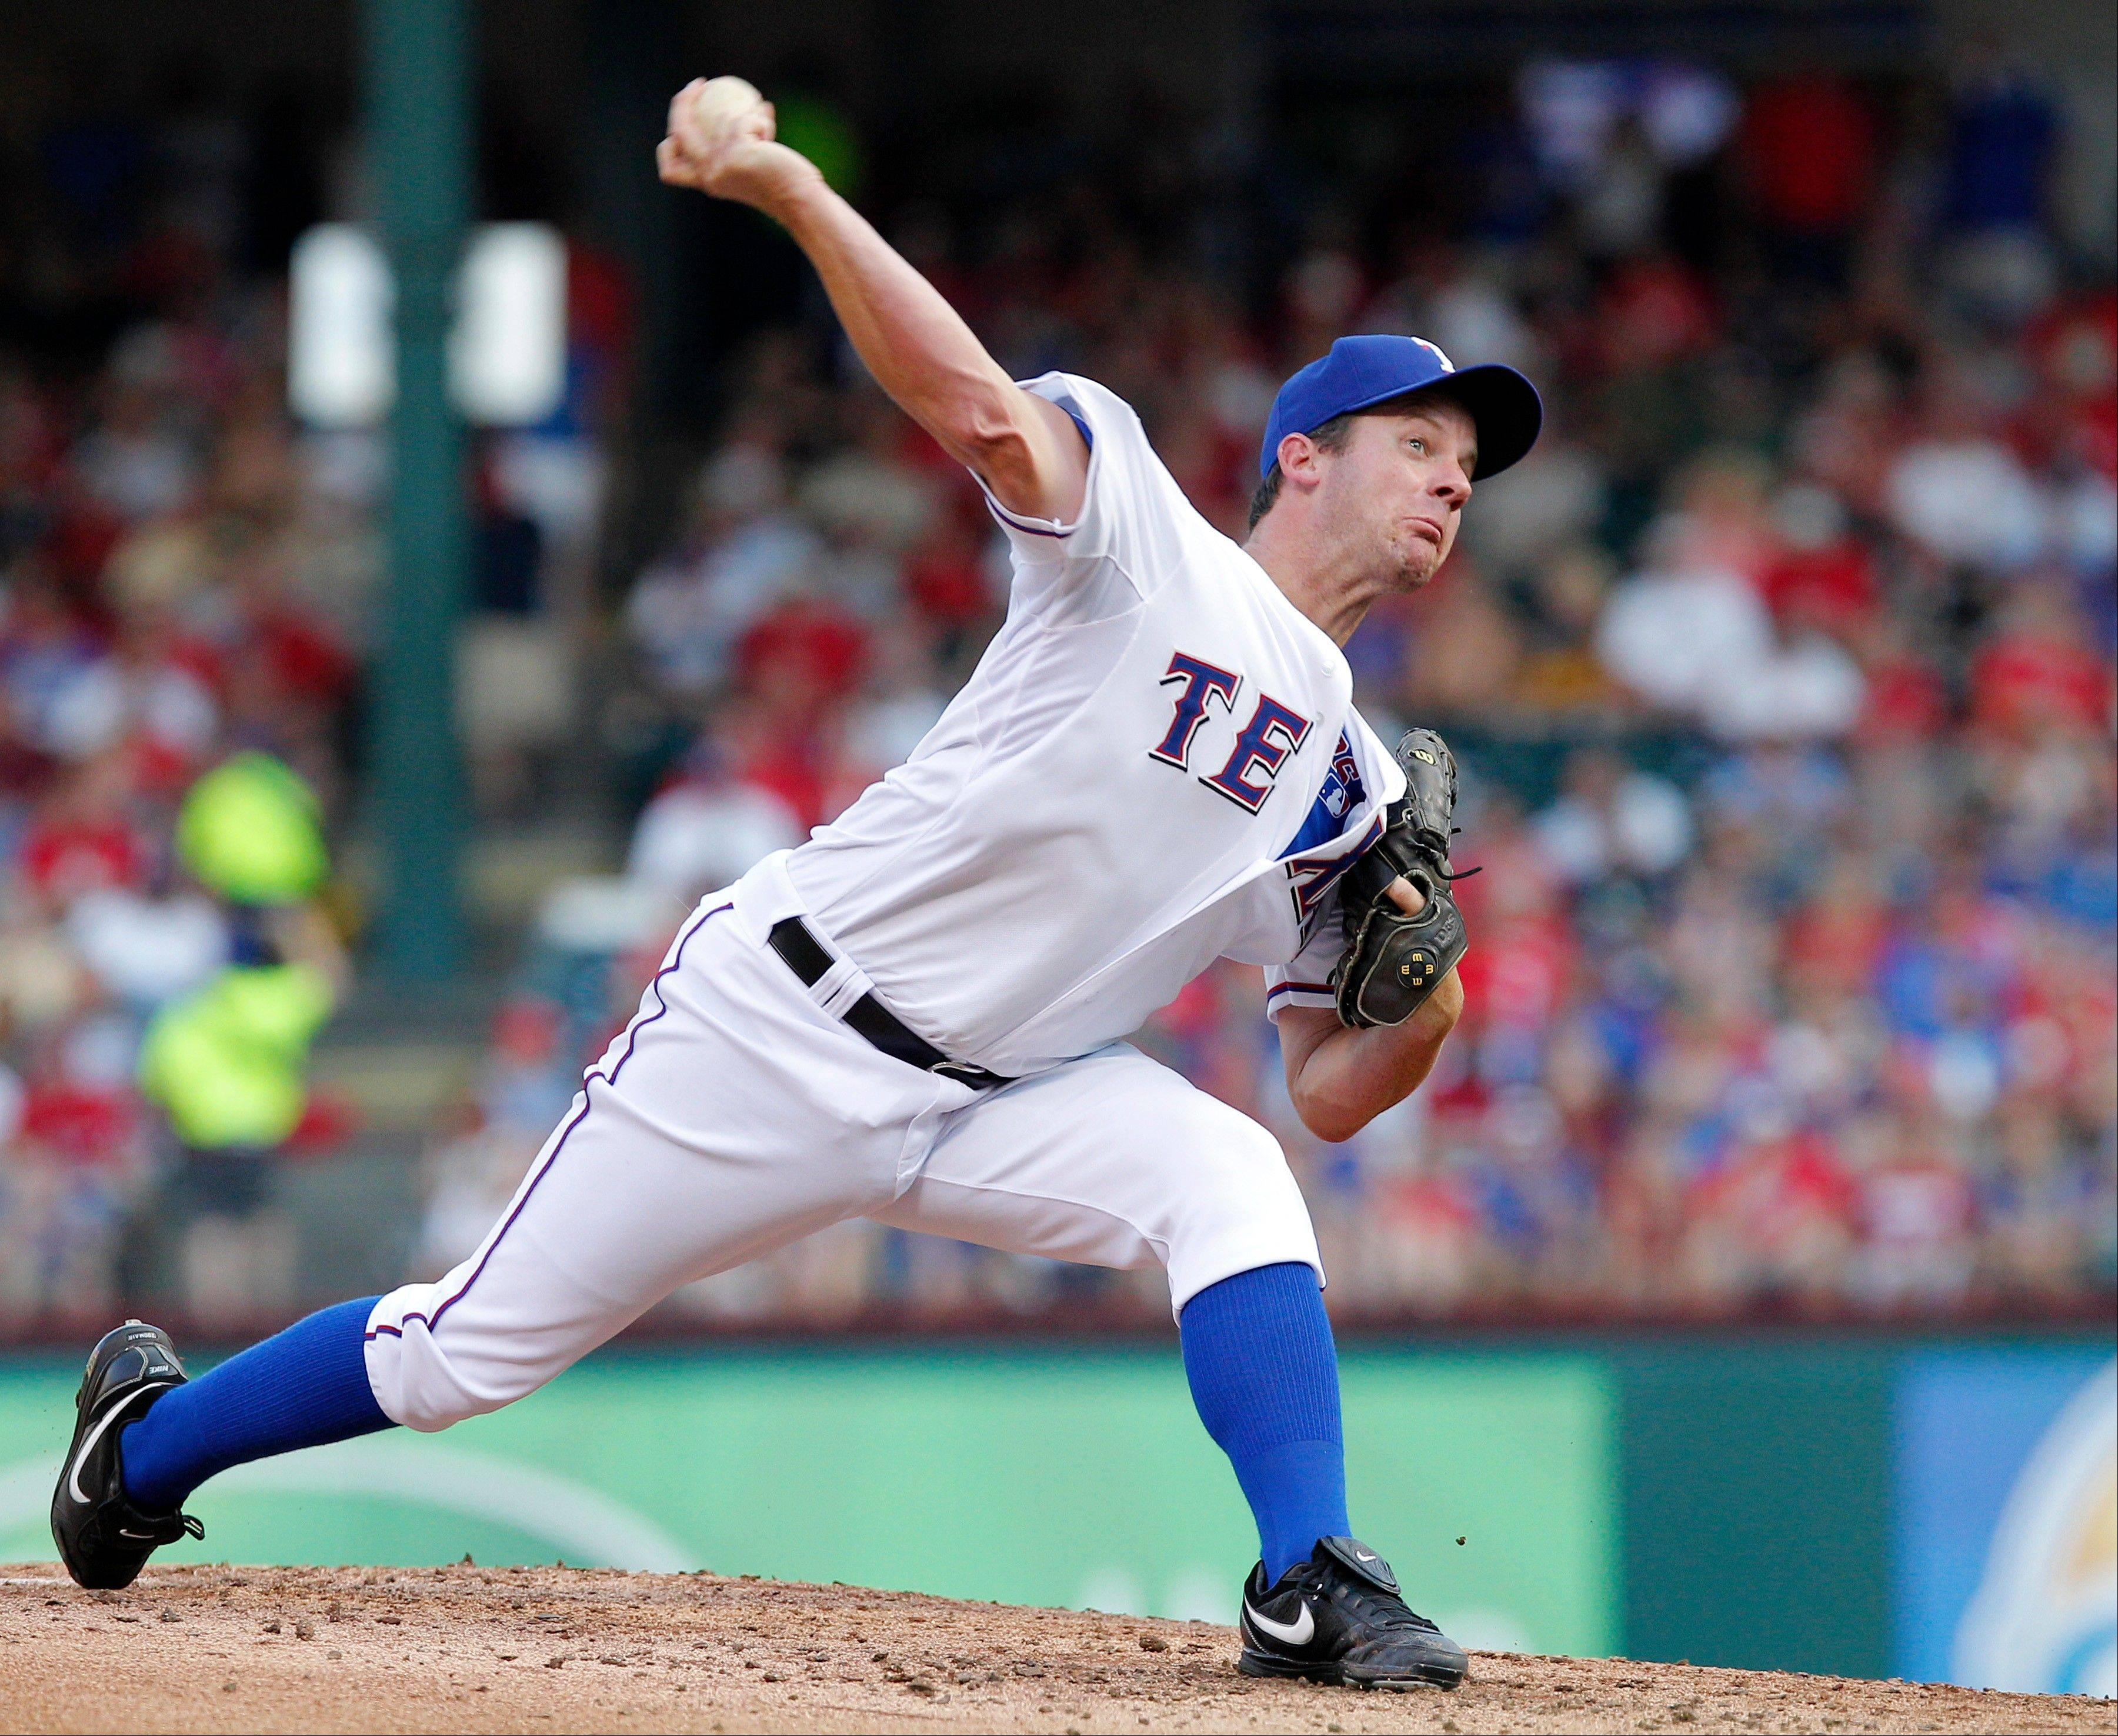 Rangers pitcher Roy Oswalt throws against the Colorado Rockies during the second inning Friday in Arlington, Texas.